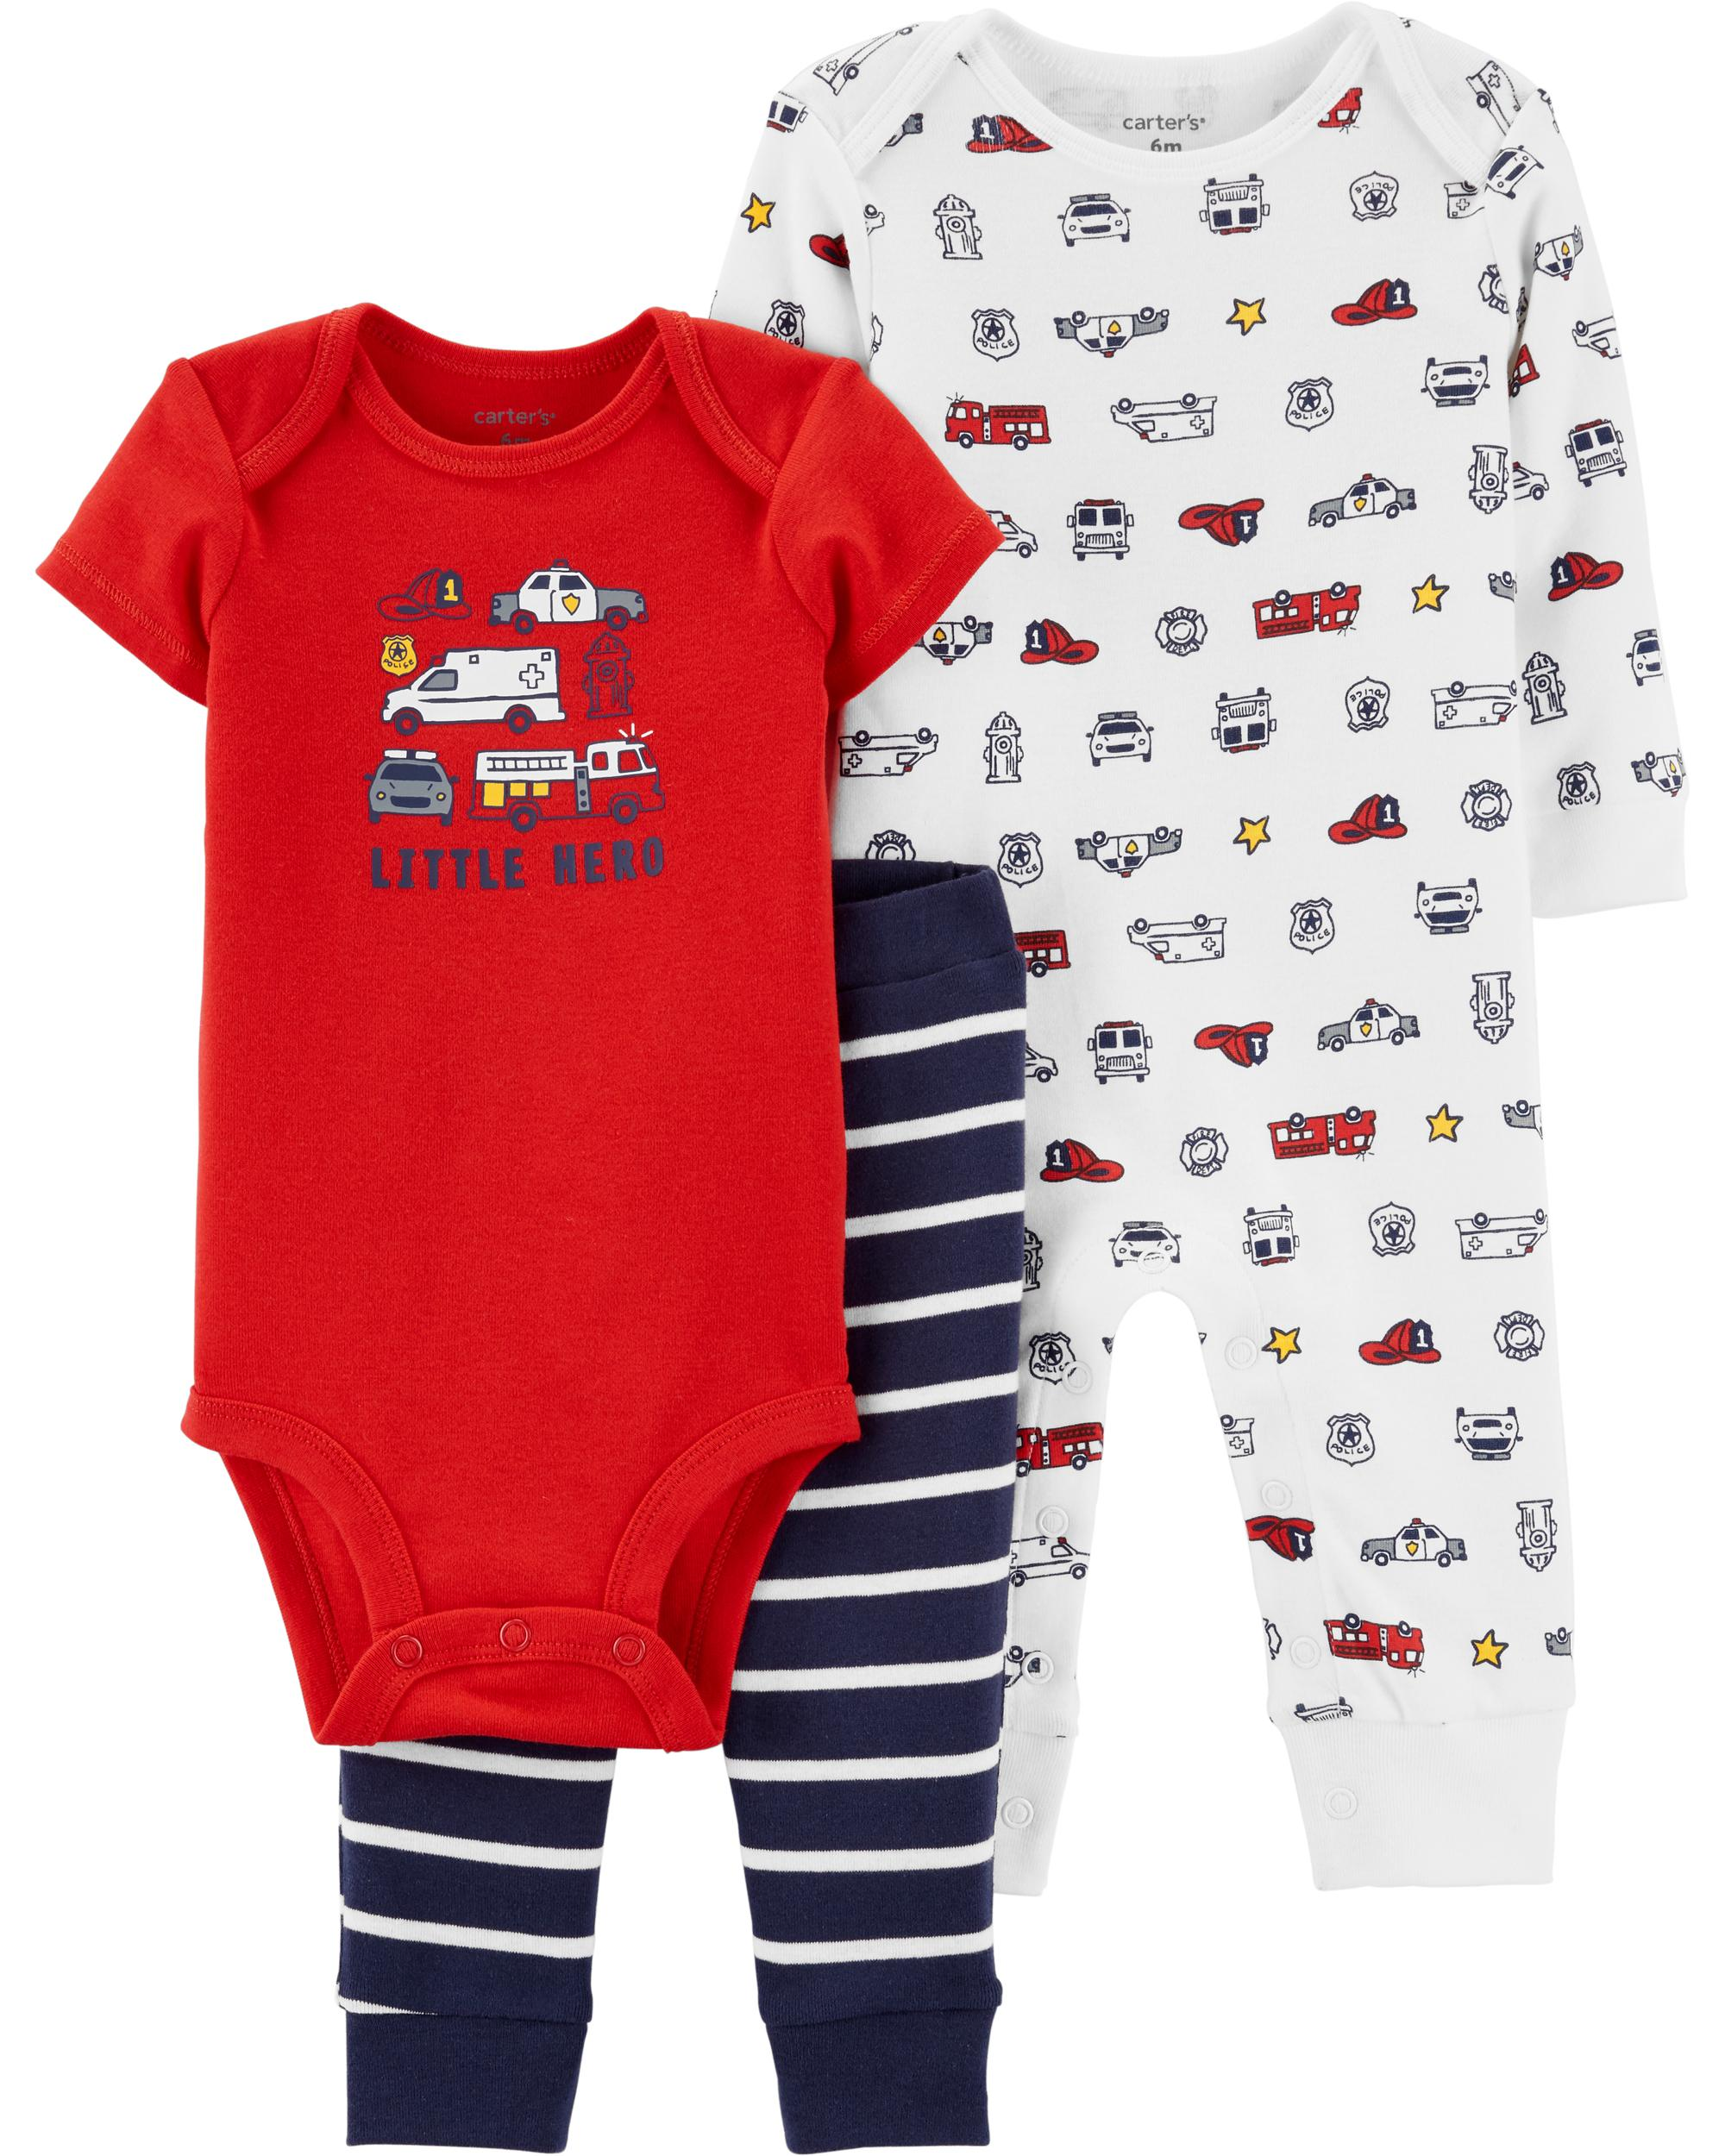 Carter/'s baby girl infant 4 Pack Body Stretch 100/% coton 24 mois